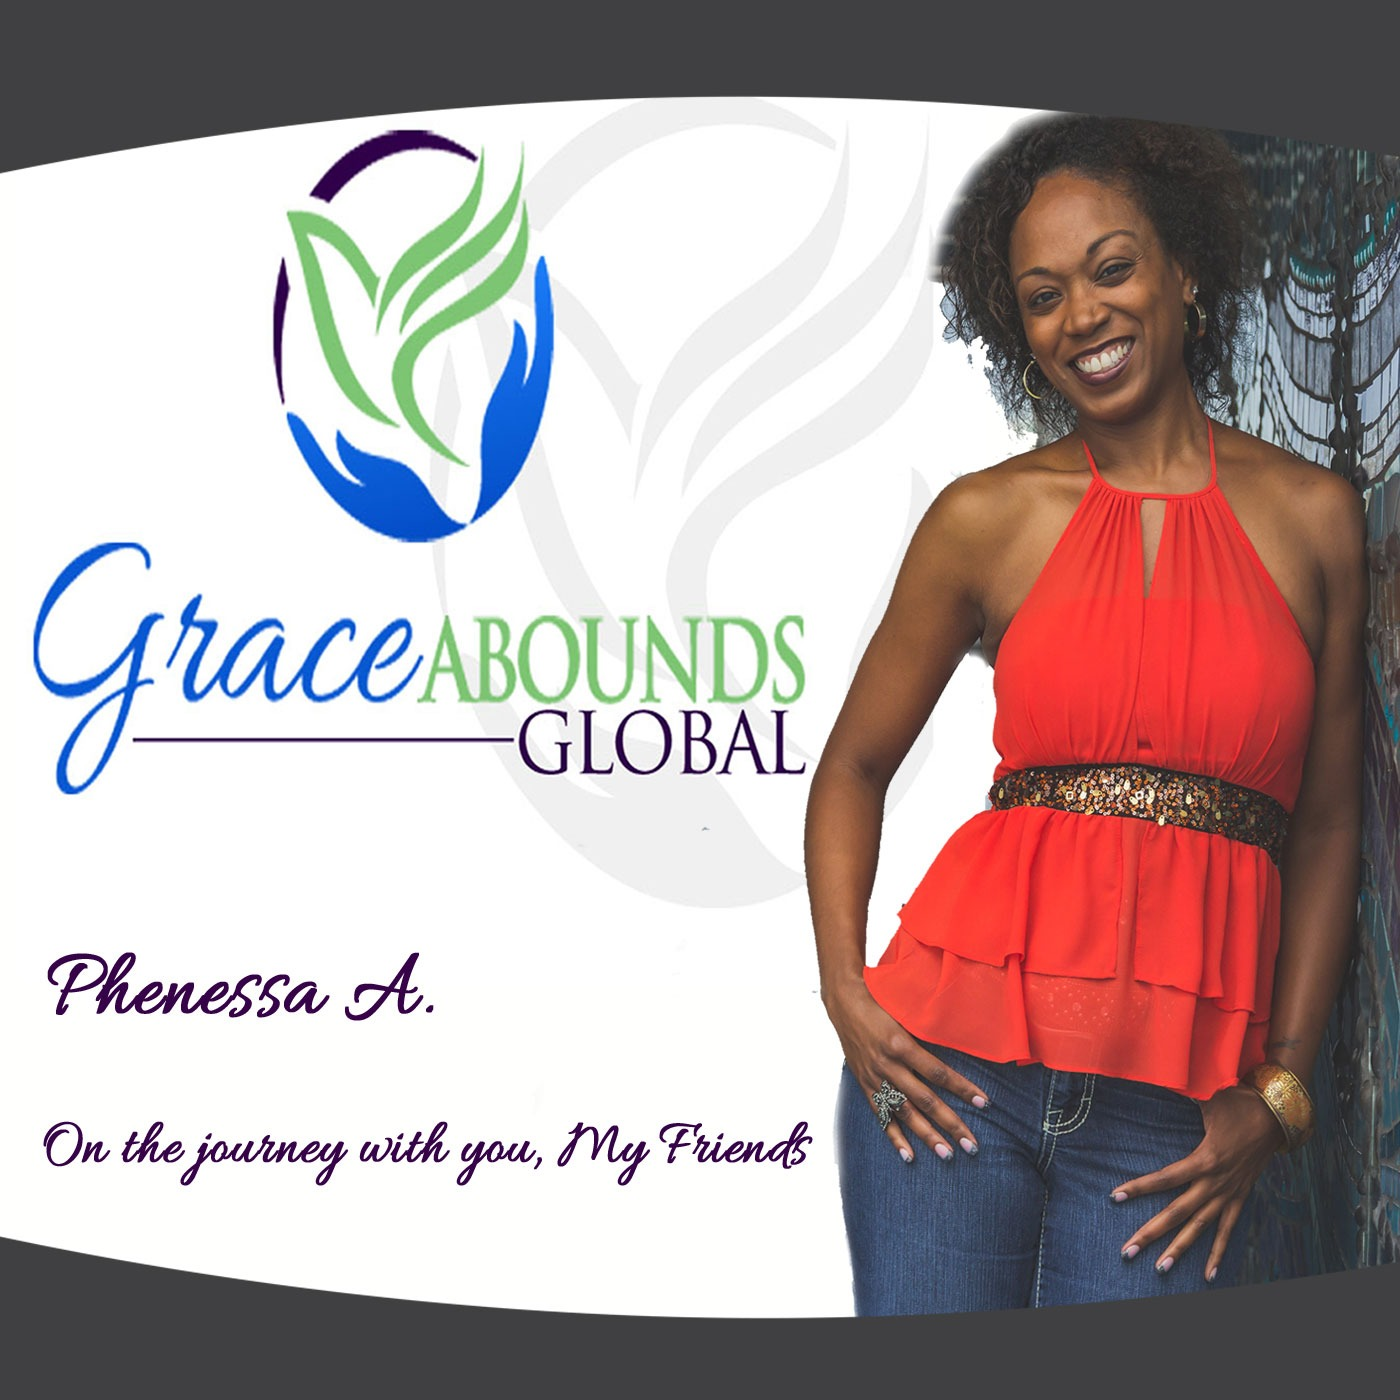 Grace Abounds Global